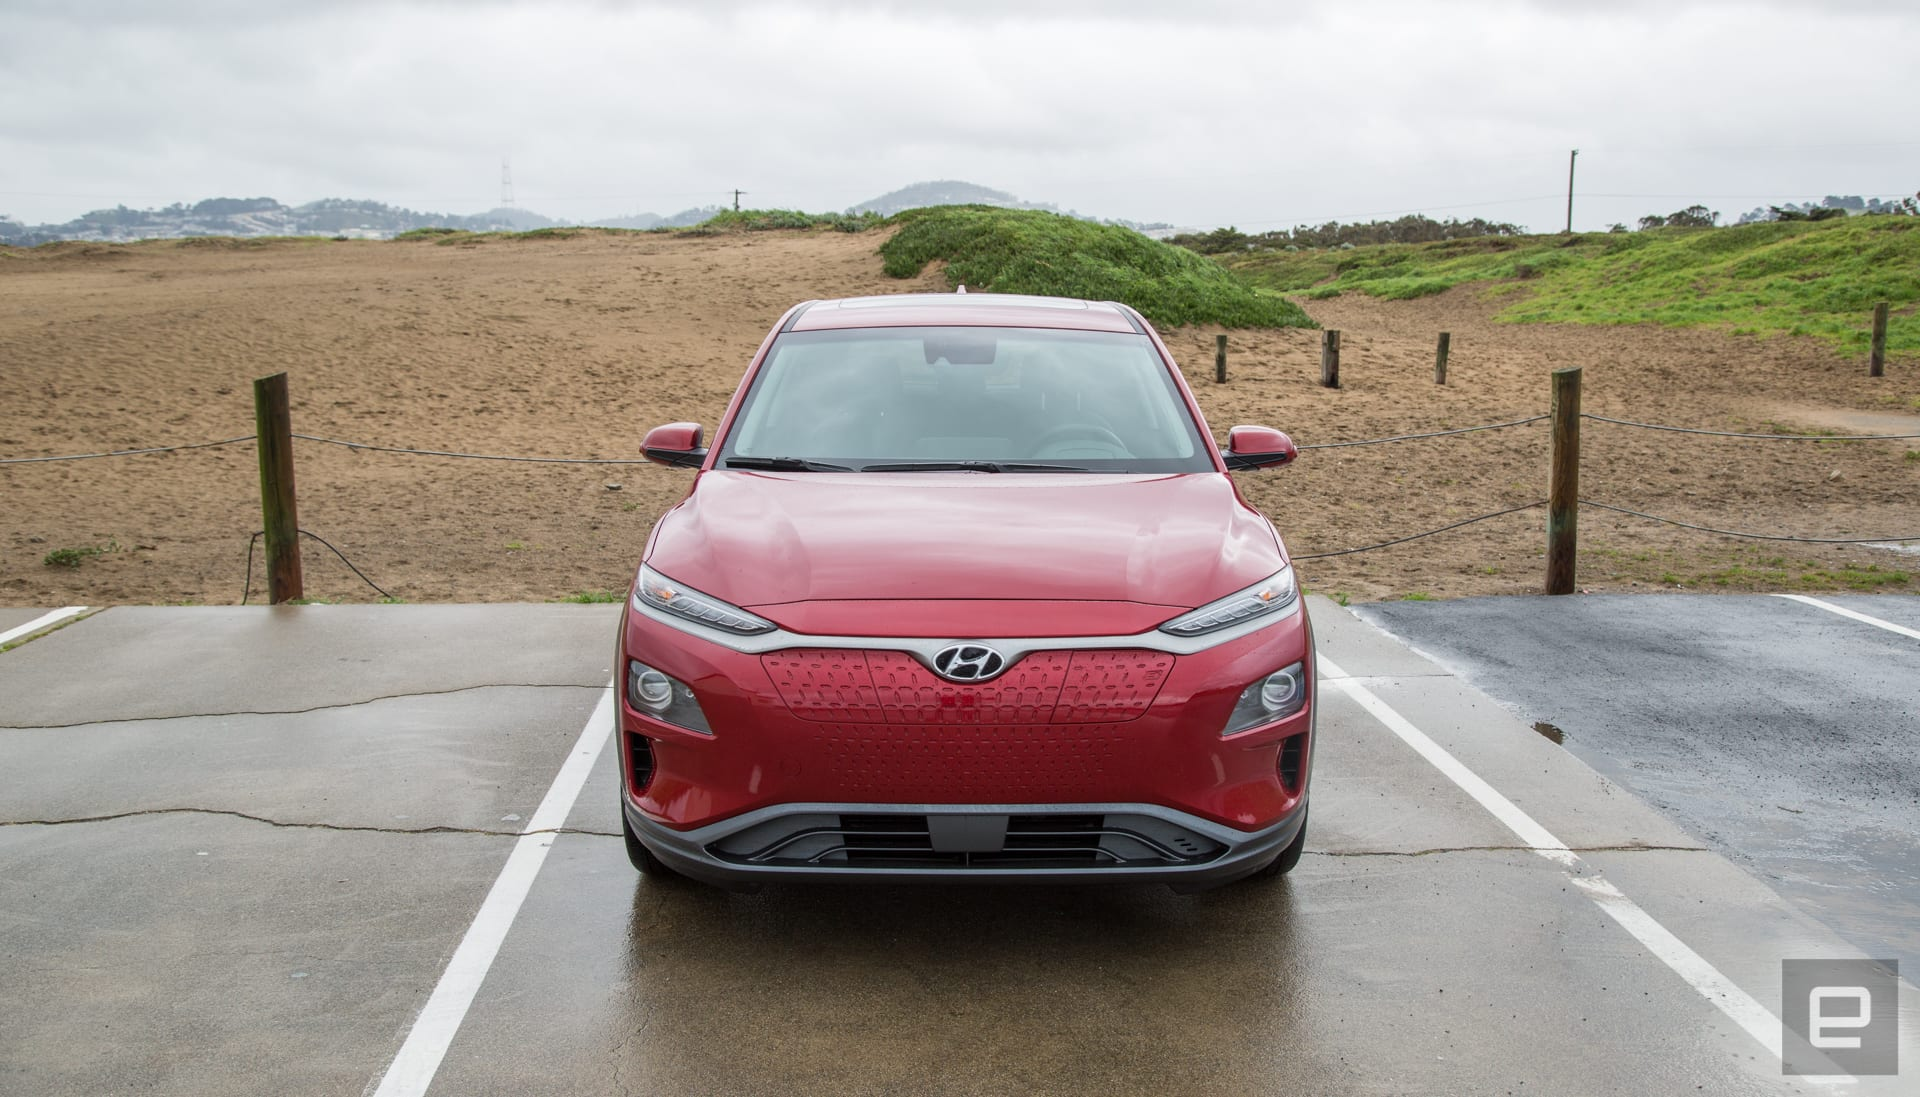 Hyundai's Kona EV is the car you didn't know you were